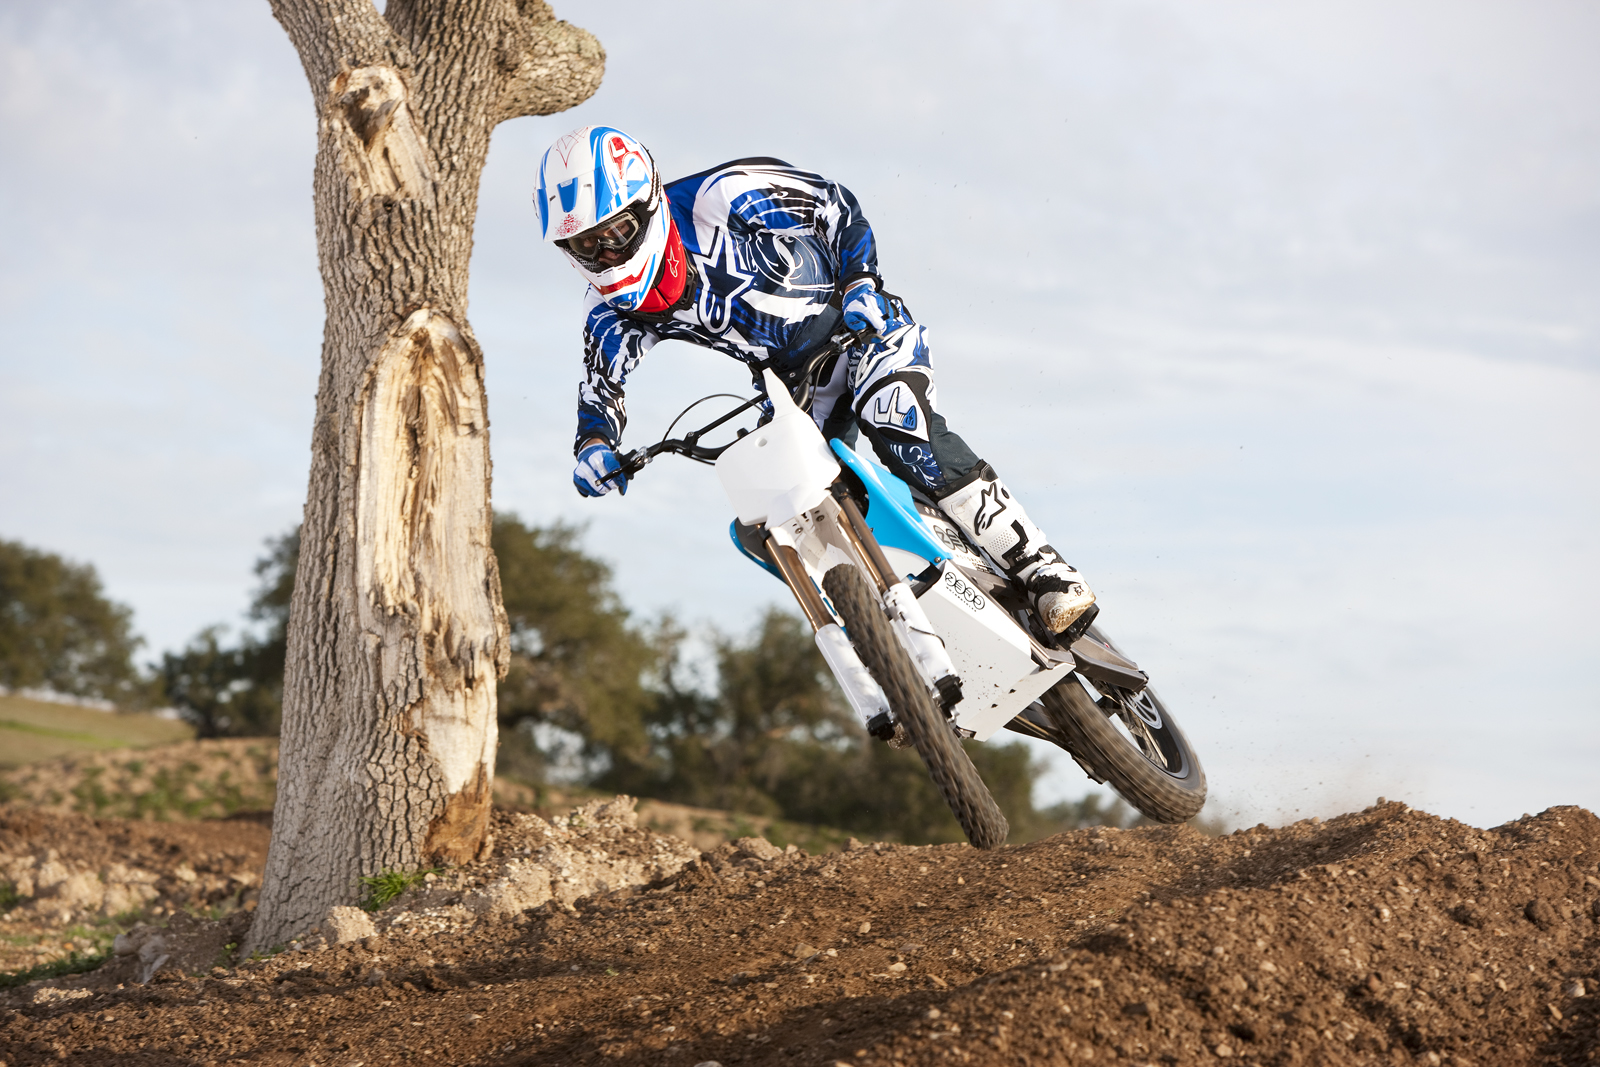 2010 Zero MX Electric Motorcycle: Zaca Station - Rider Jumps by Old Oak